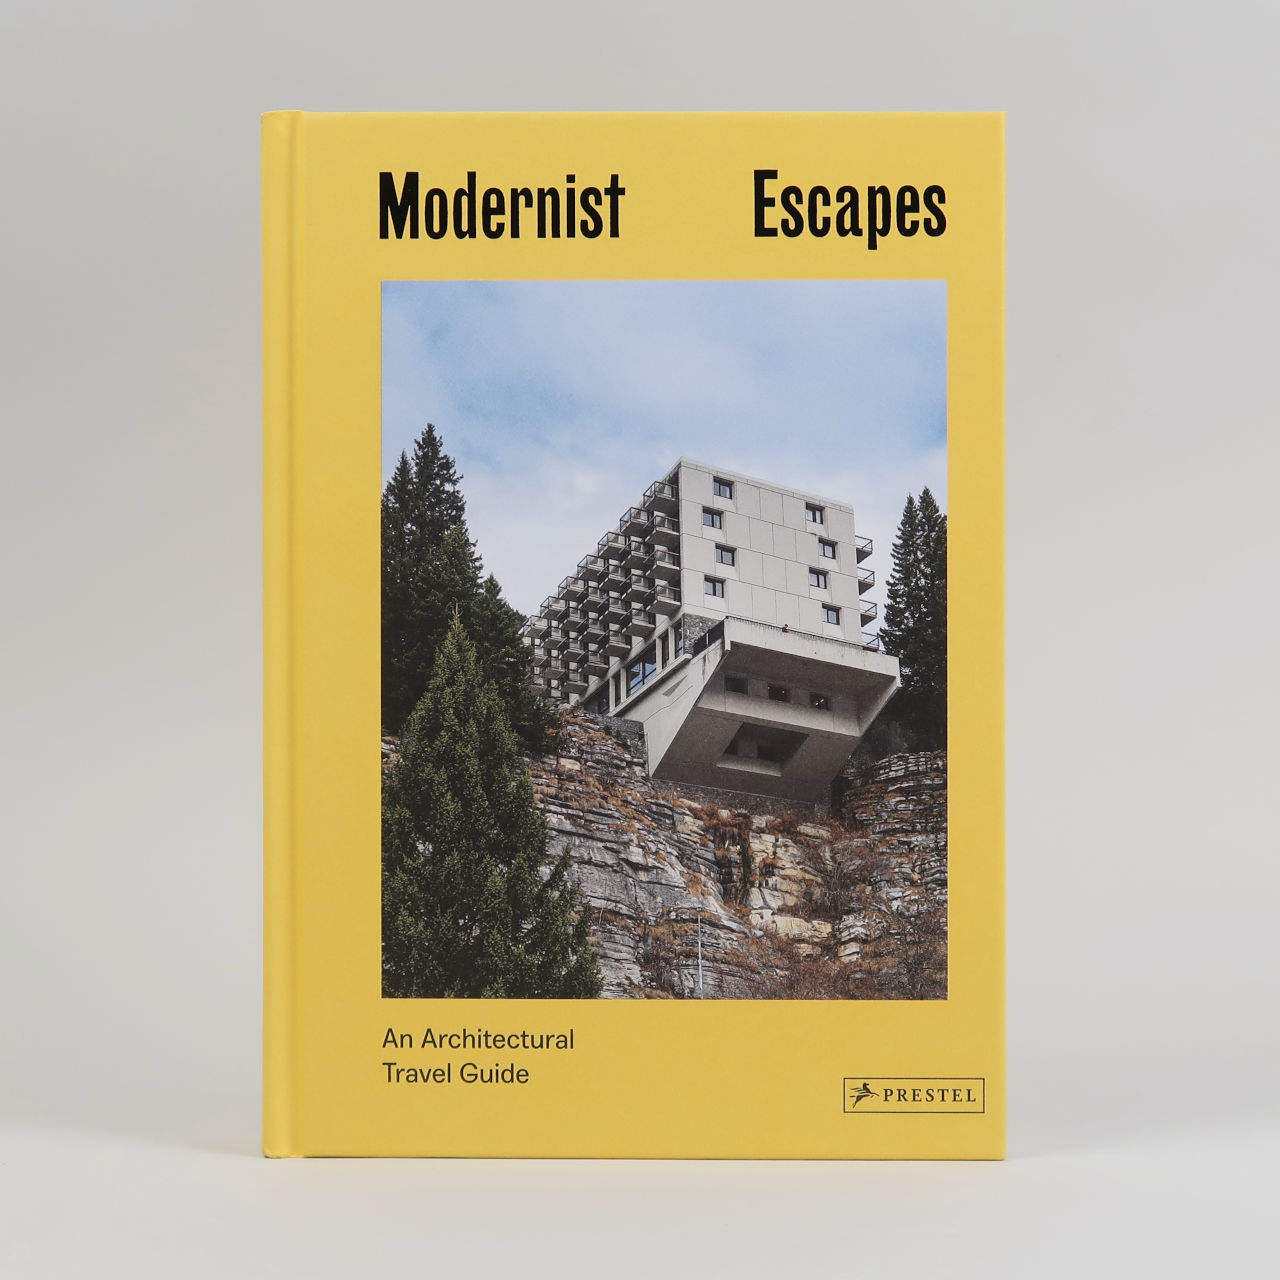 Modernist Escapes: An Architectural Travel Guide